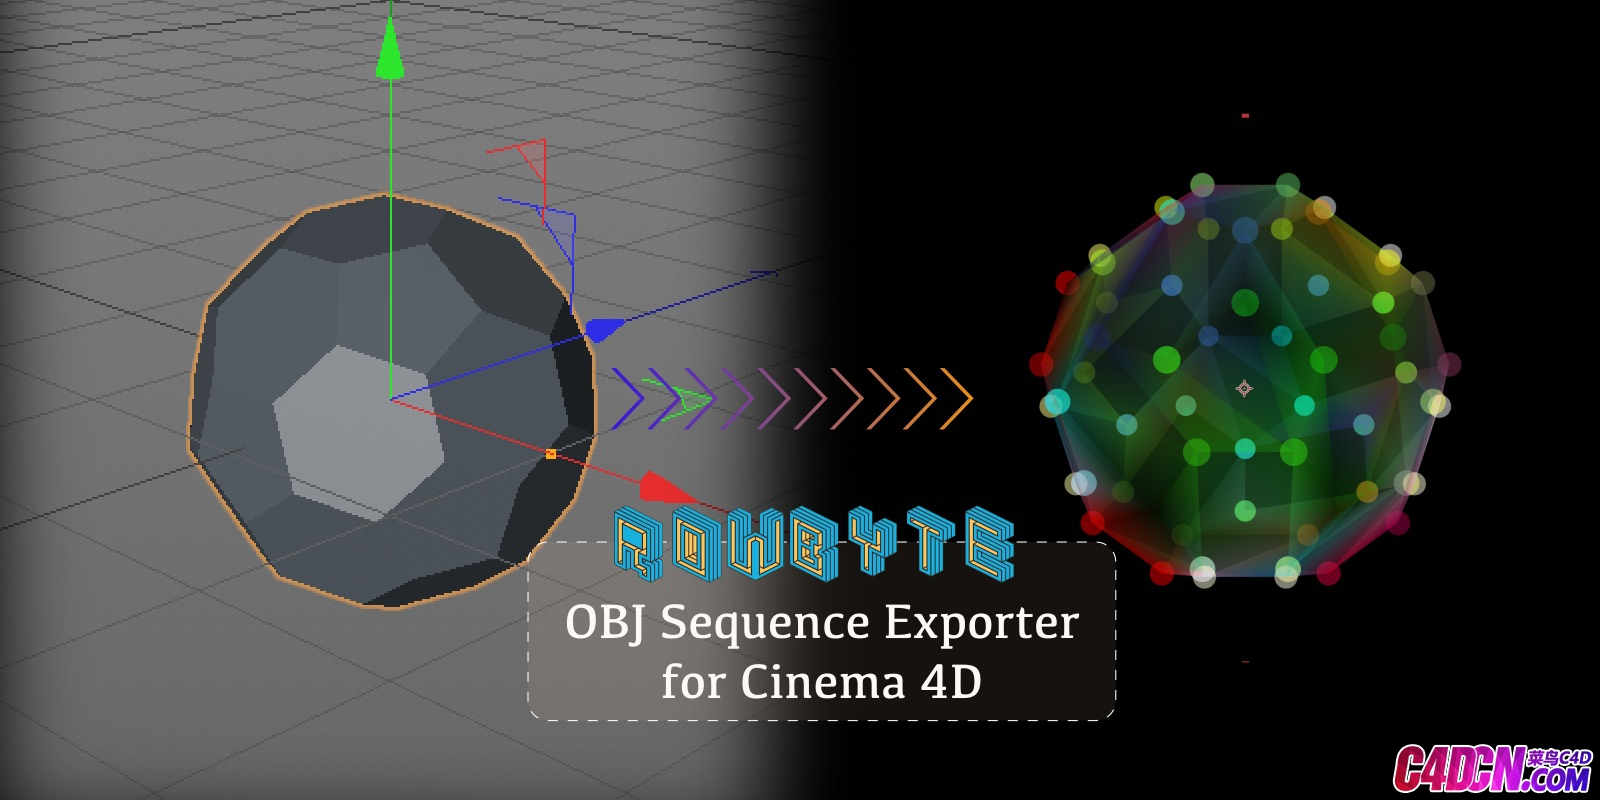 OBJ Sequence Exporter 2.0 for C4D R20